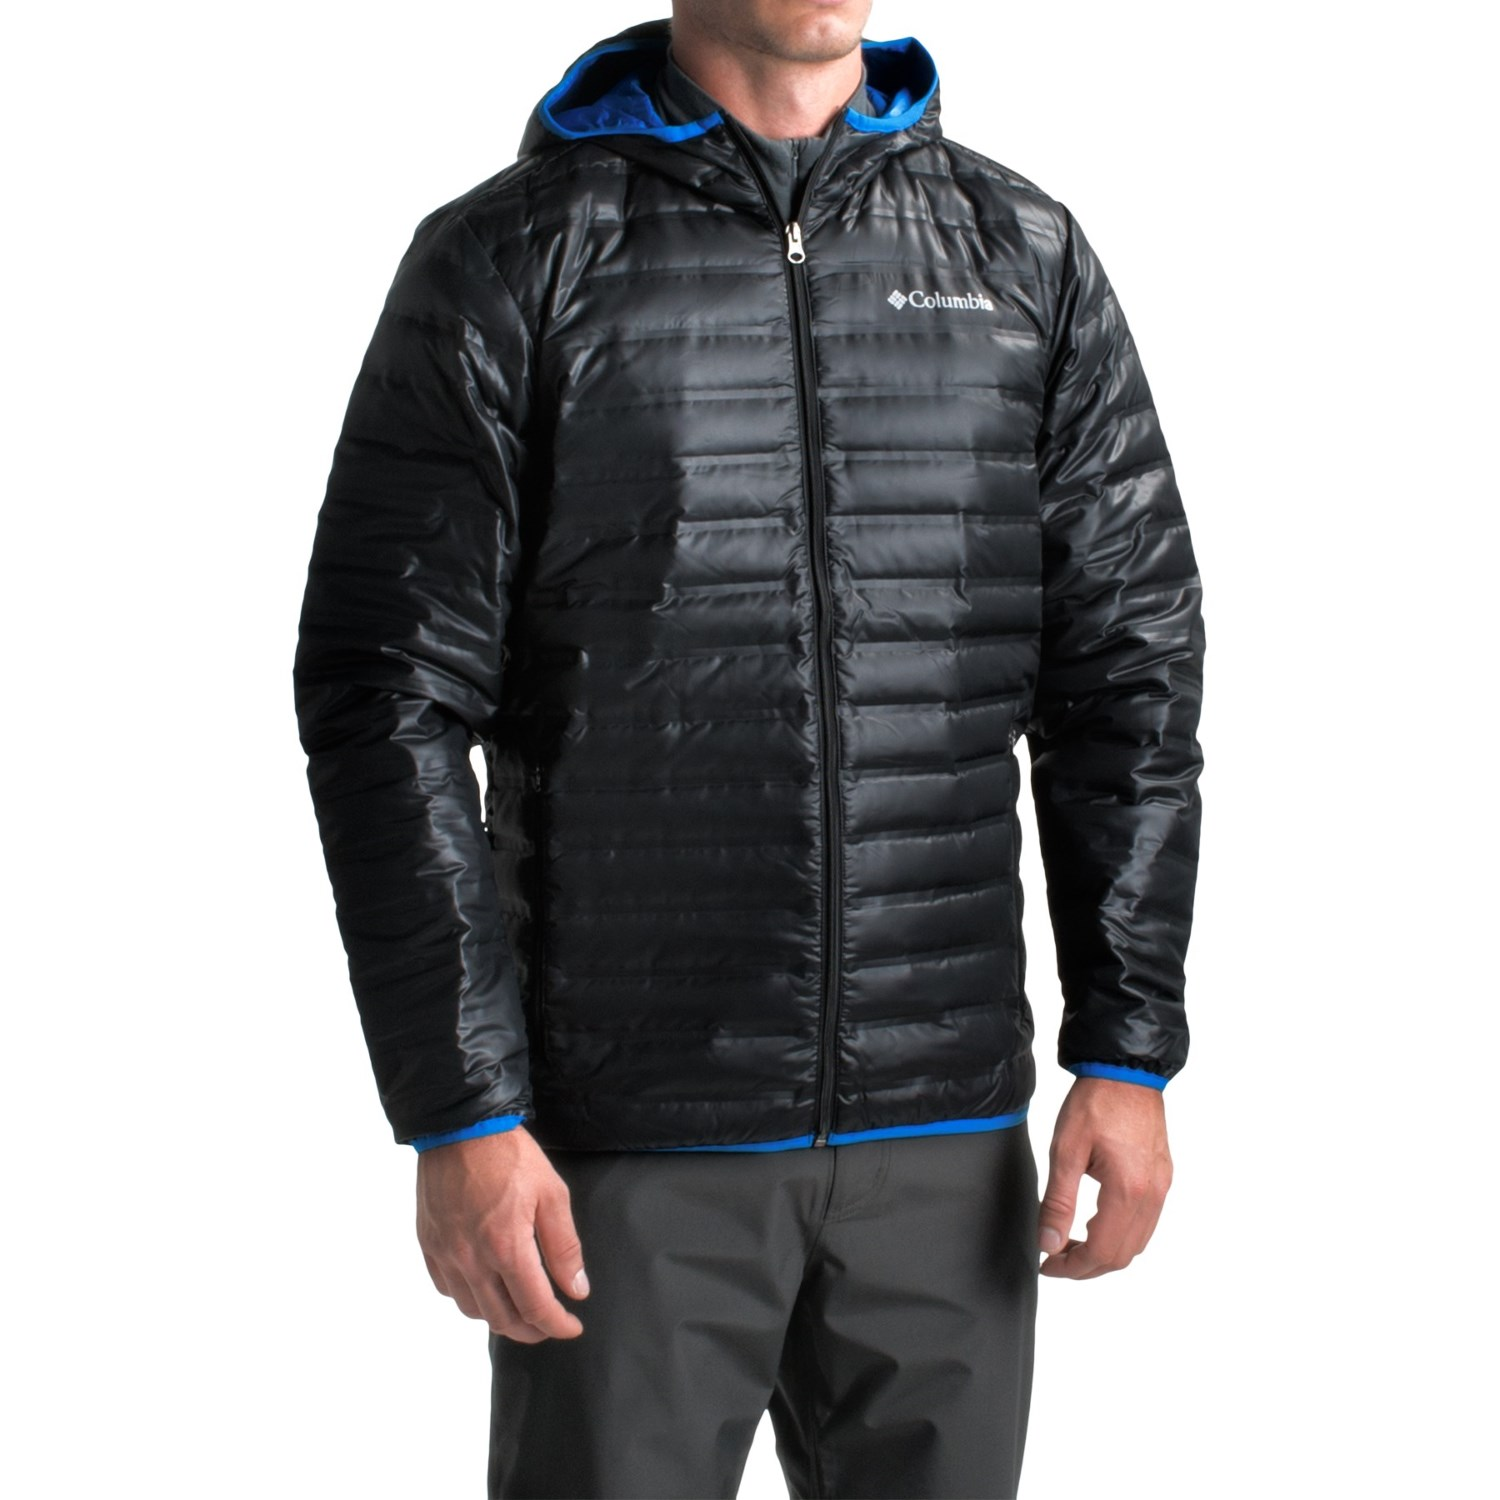 Where to buy columbia jackets